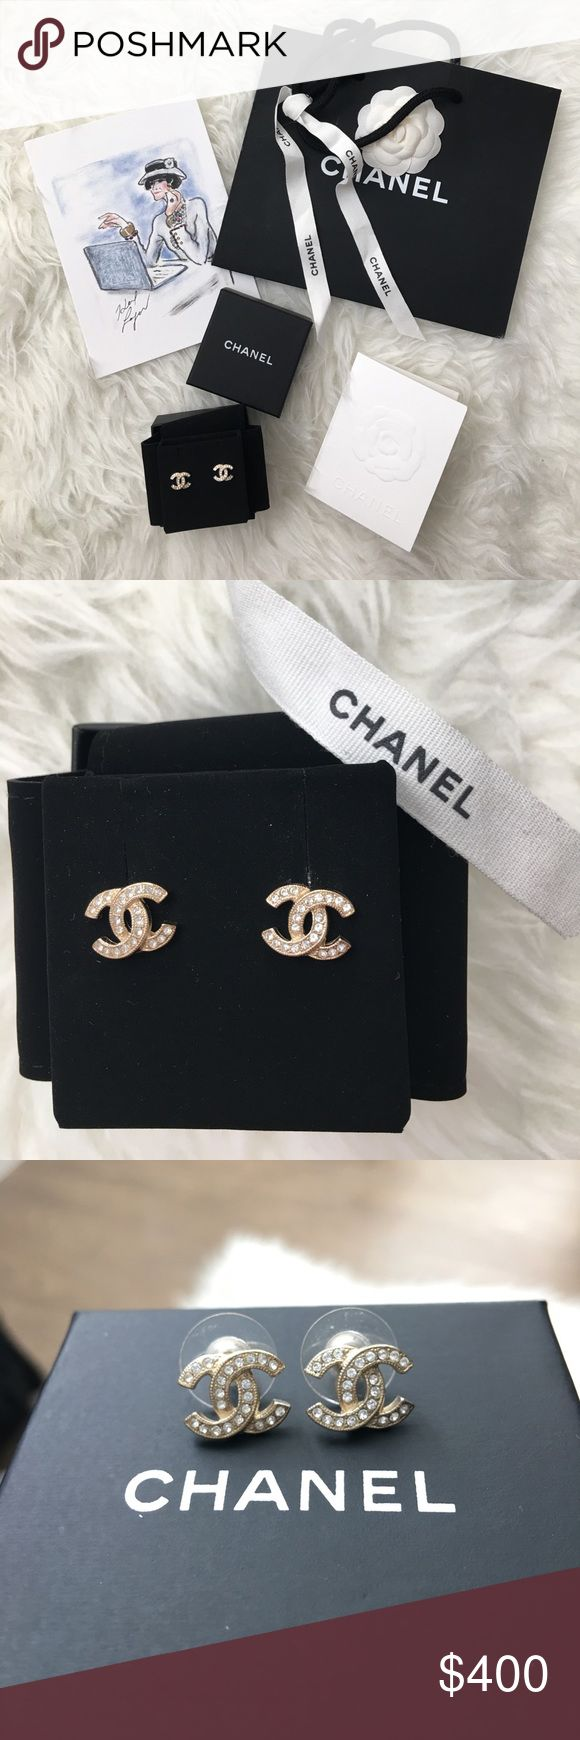 Chanel GHW earrings - 100% authentic 100% authentic Chanel earring studs - light gold hardware, micro pave crystals. EXCELLENT used condition- worn twice. Comes with box and bag. Made in France. No trades. CHANEL Jewelry Earrings